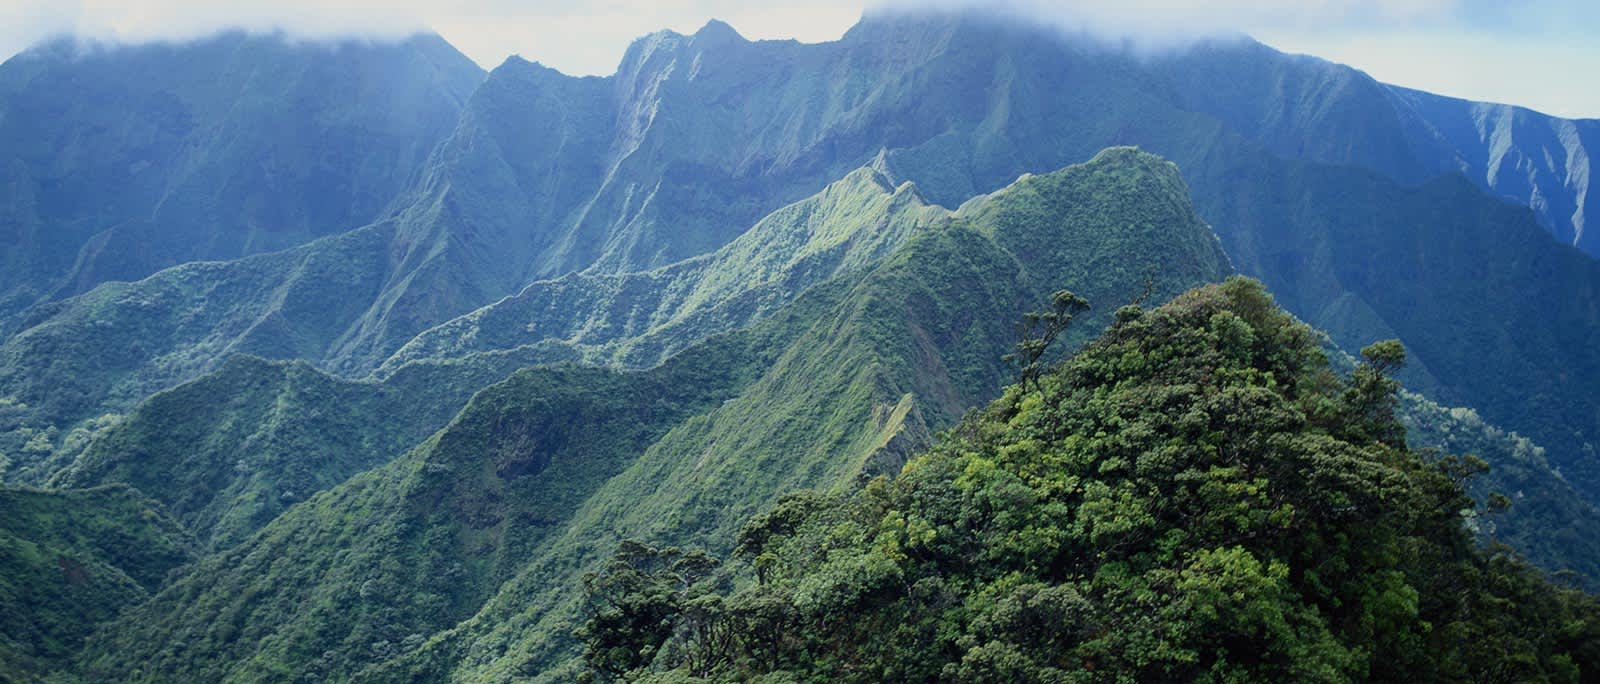 Iao Valley State Monument at Hawaii